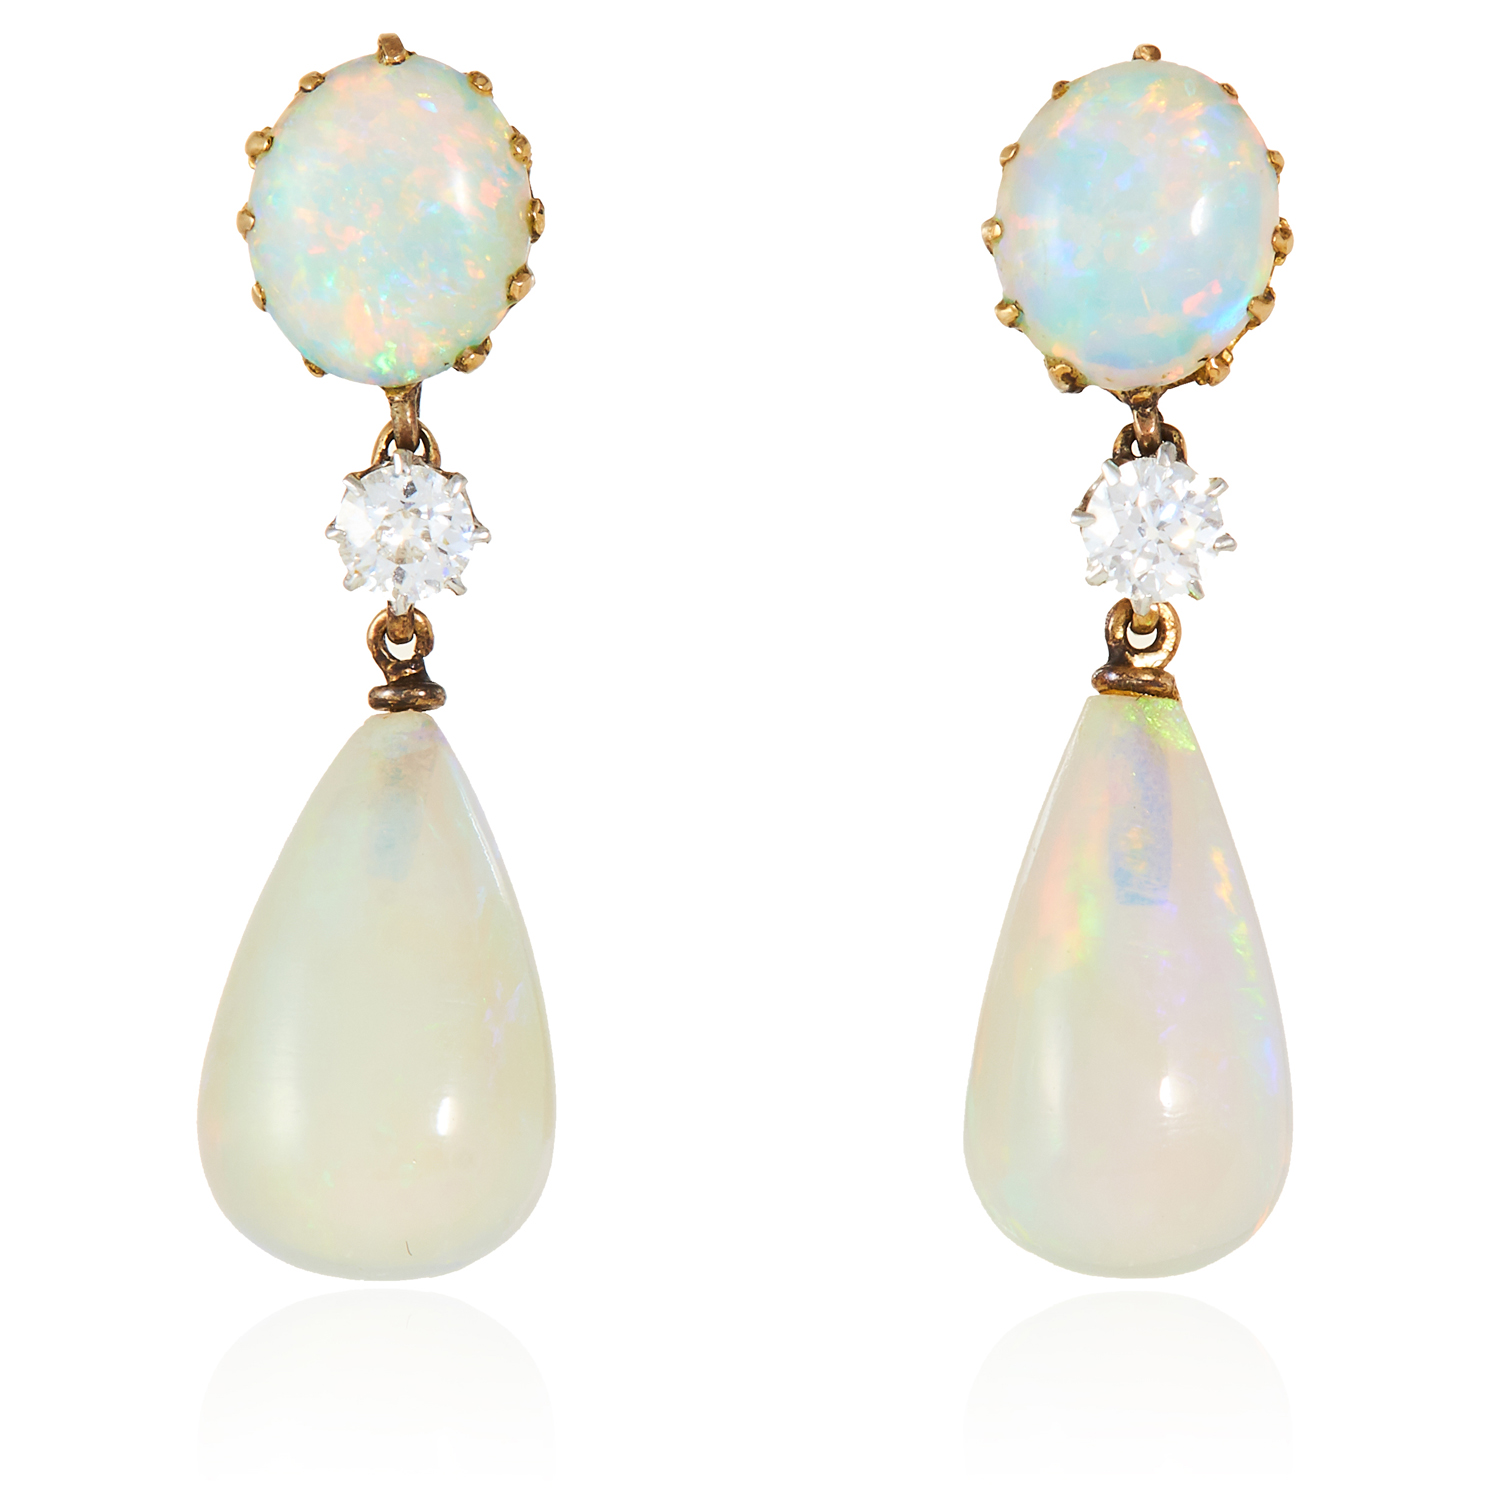 A PAIR OF OPAL AND DIAMOND DROP EARRINGS in high carat yellow gold each designed as a polished